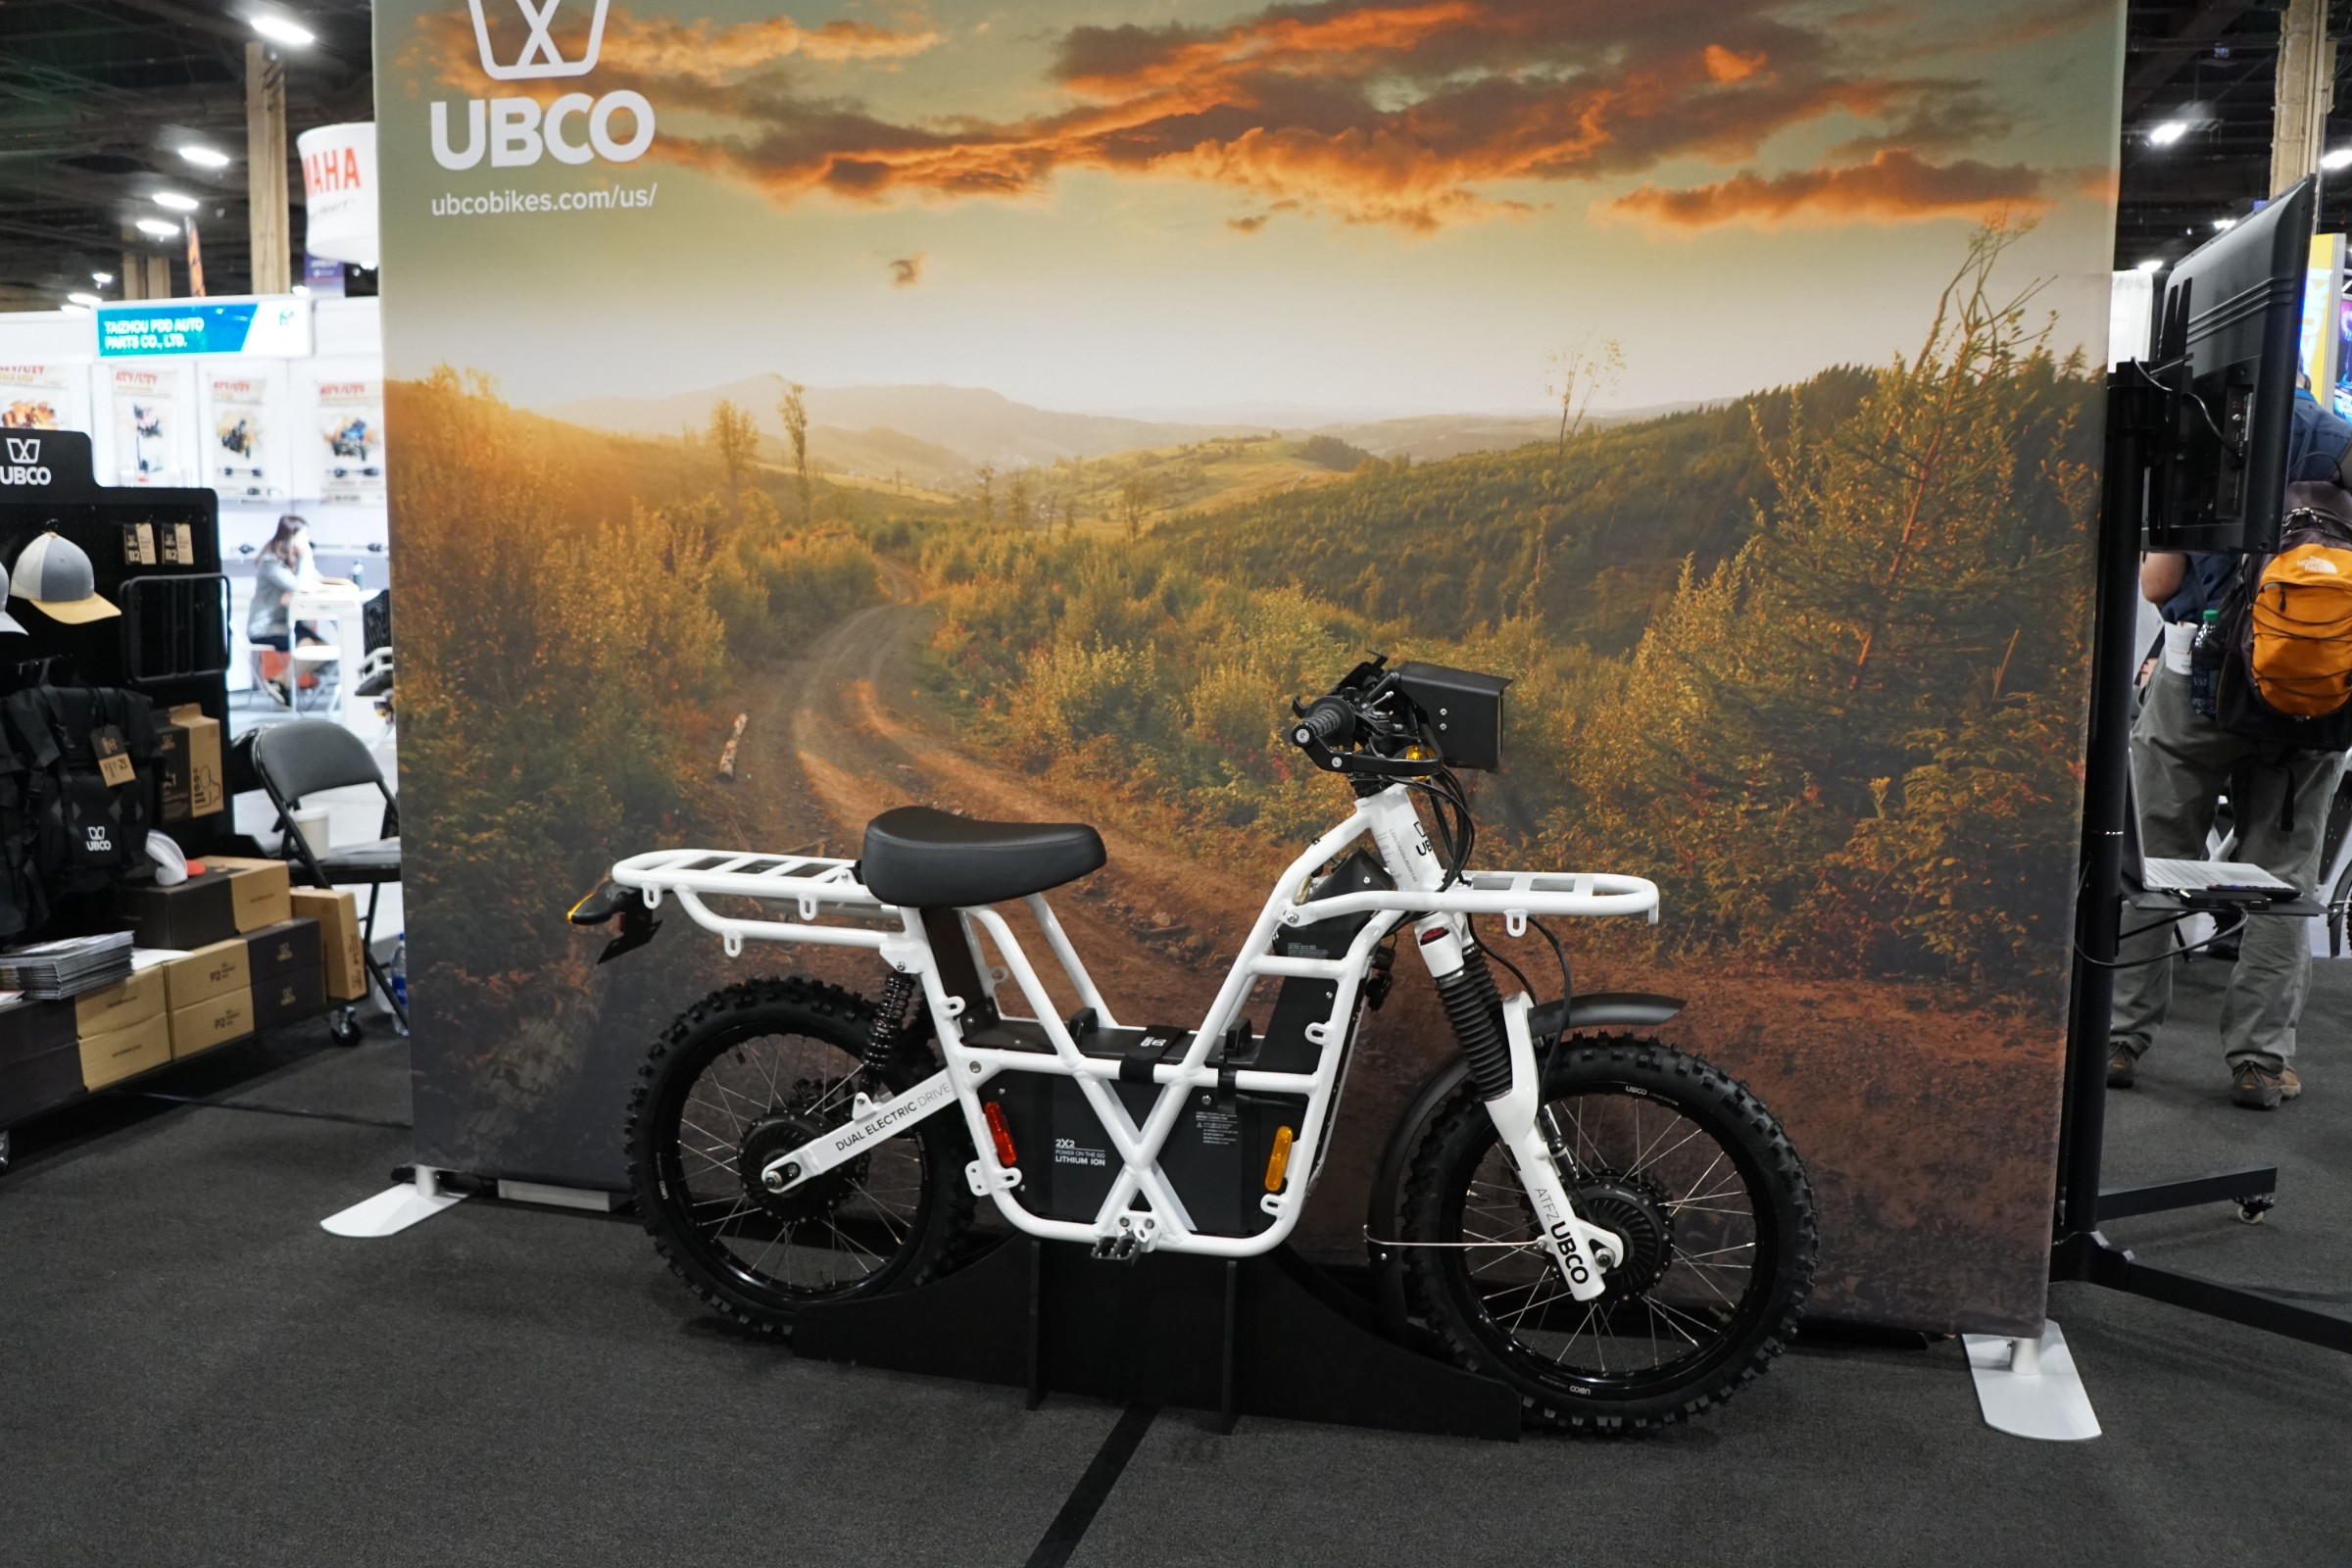 fa5dfe9acf1 Now, something totally different: Riding the Ubco 2x2 electric trail bike -  RevZilla